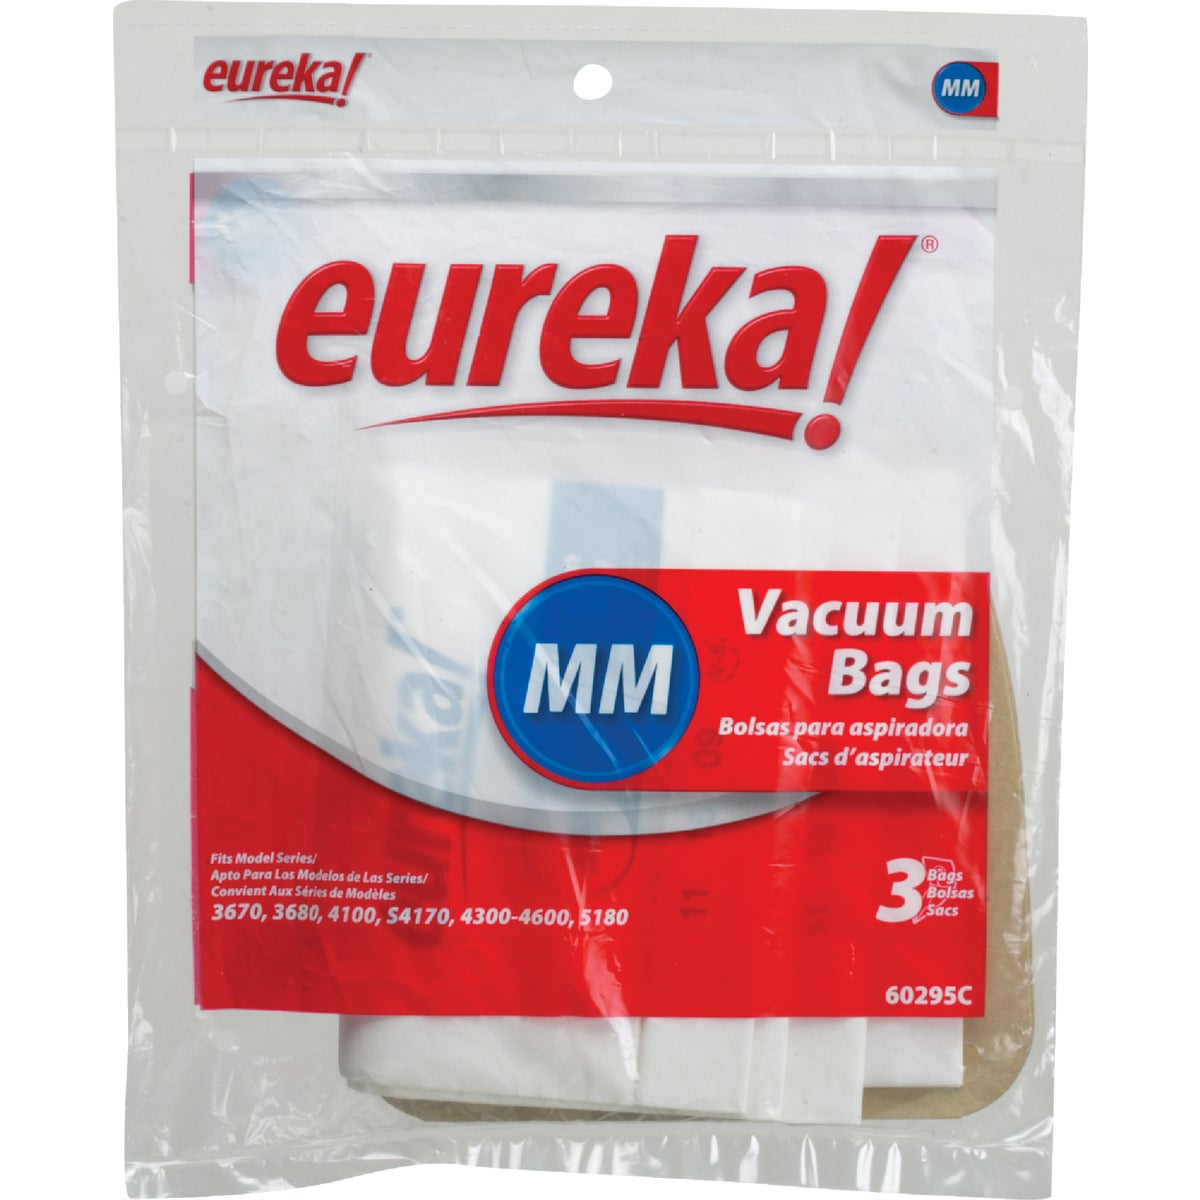 TYPE MM VAC CLEANER BAG - 60295C-6 by Electrolux Home Care